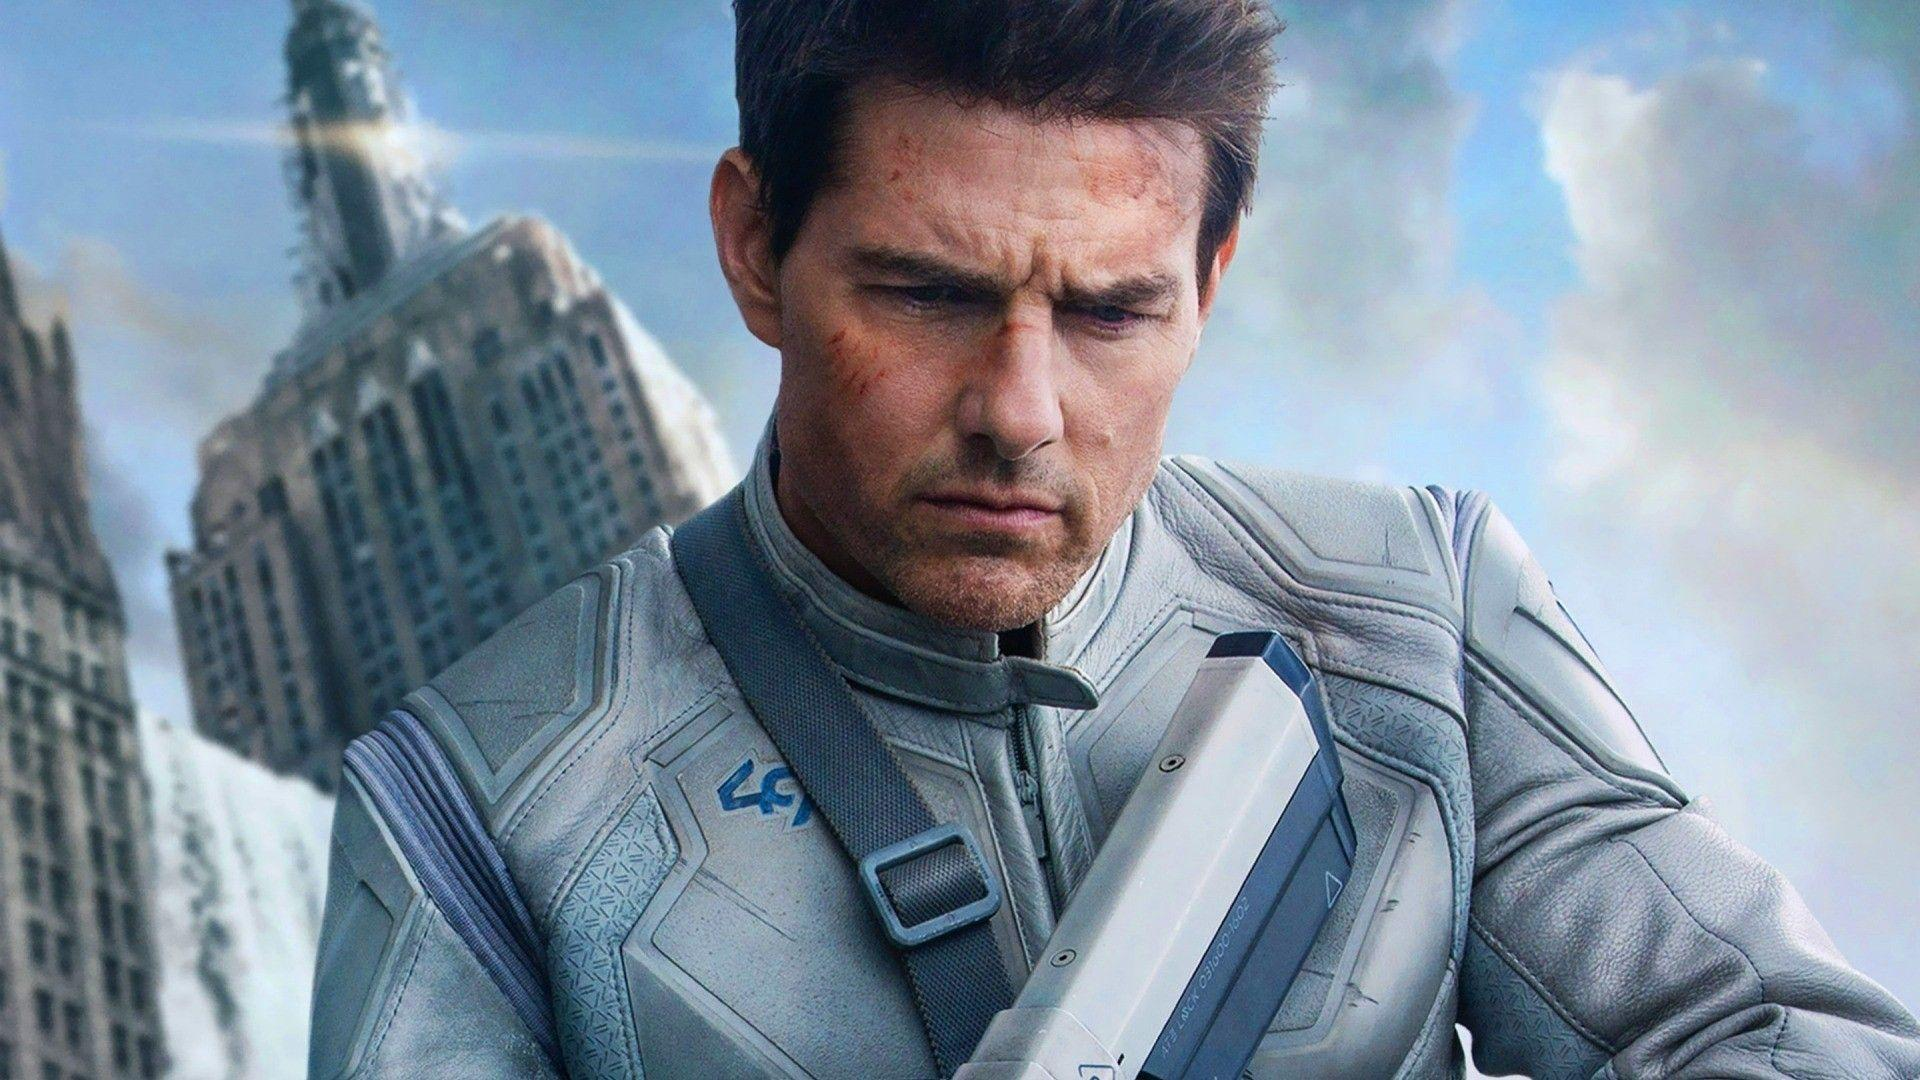 Tom Cruise HD Wallpapers Image Pictures Photos Download Page